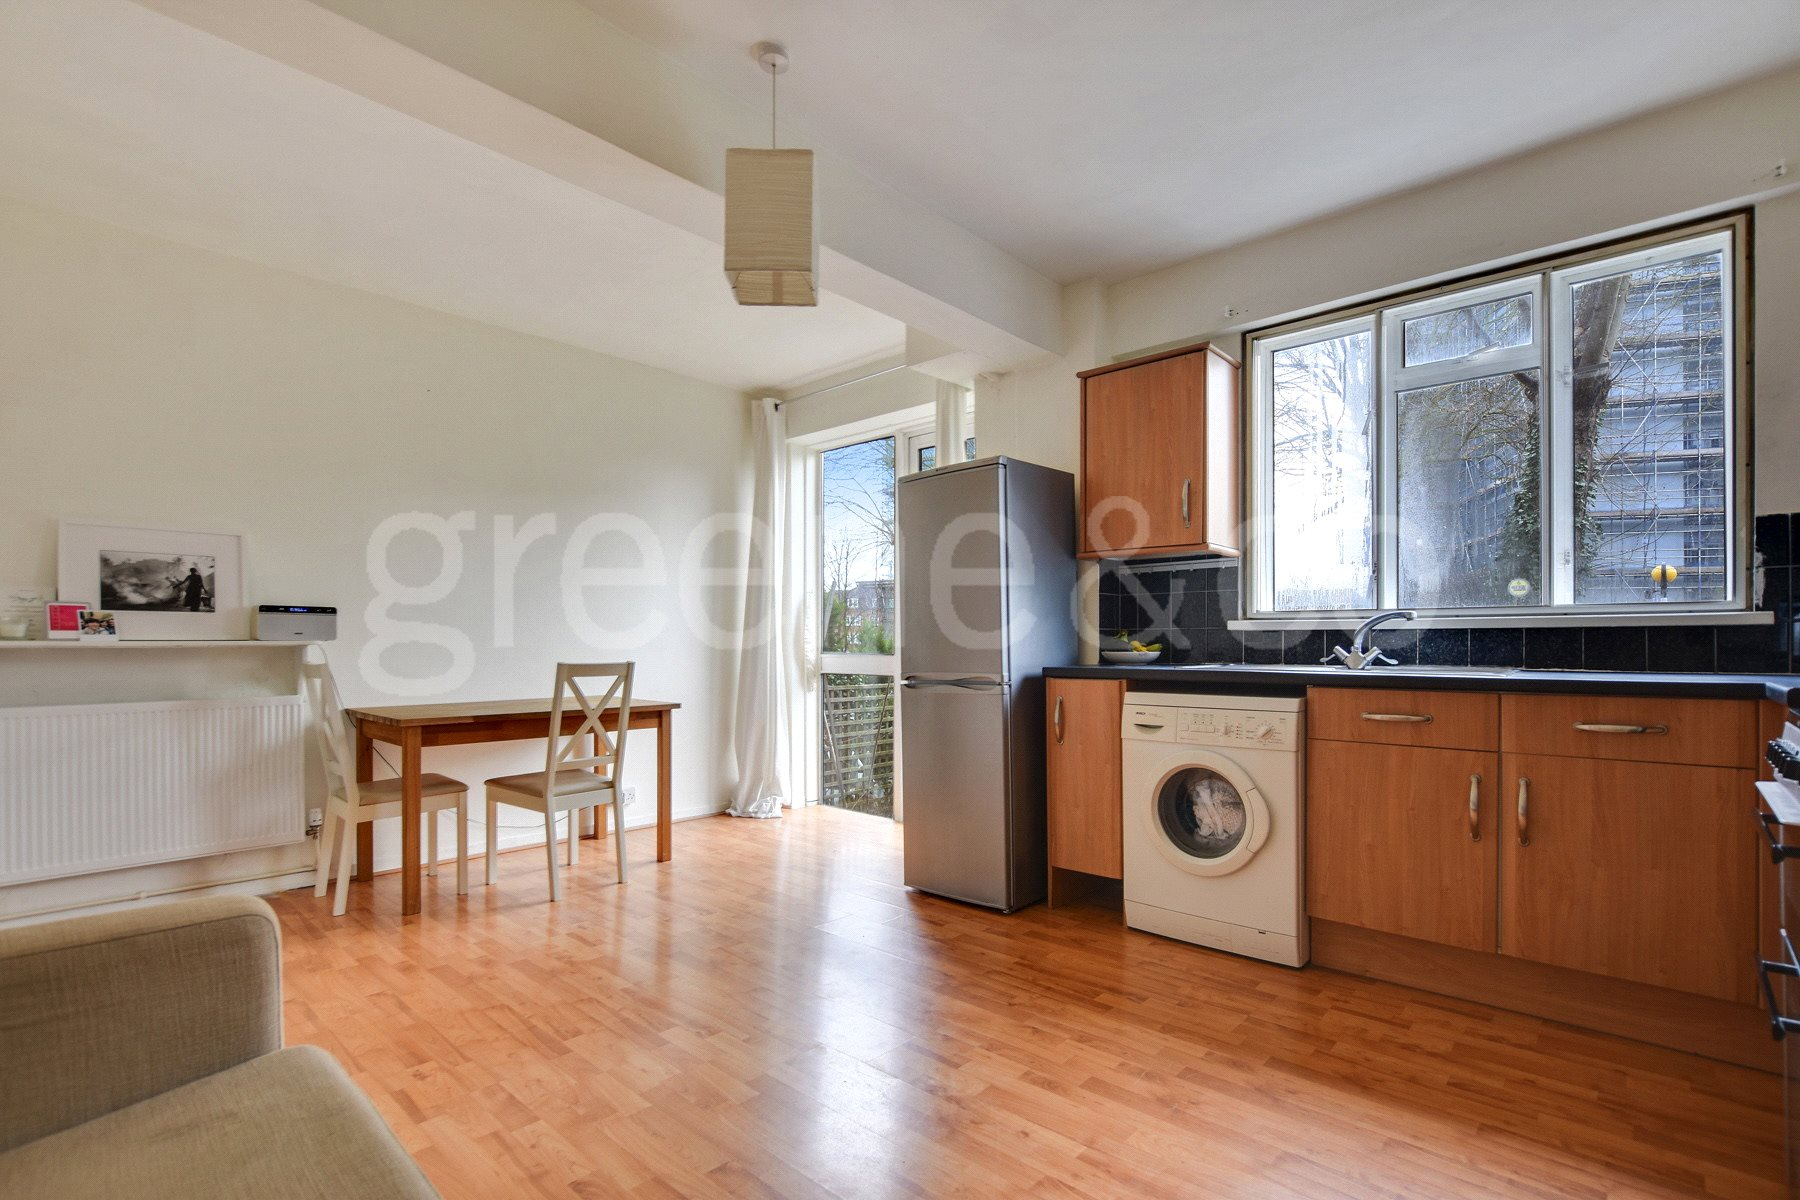 1 Bedroom Flat for sale in Templar House, Shoot Up Hill, London, NW2